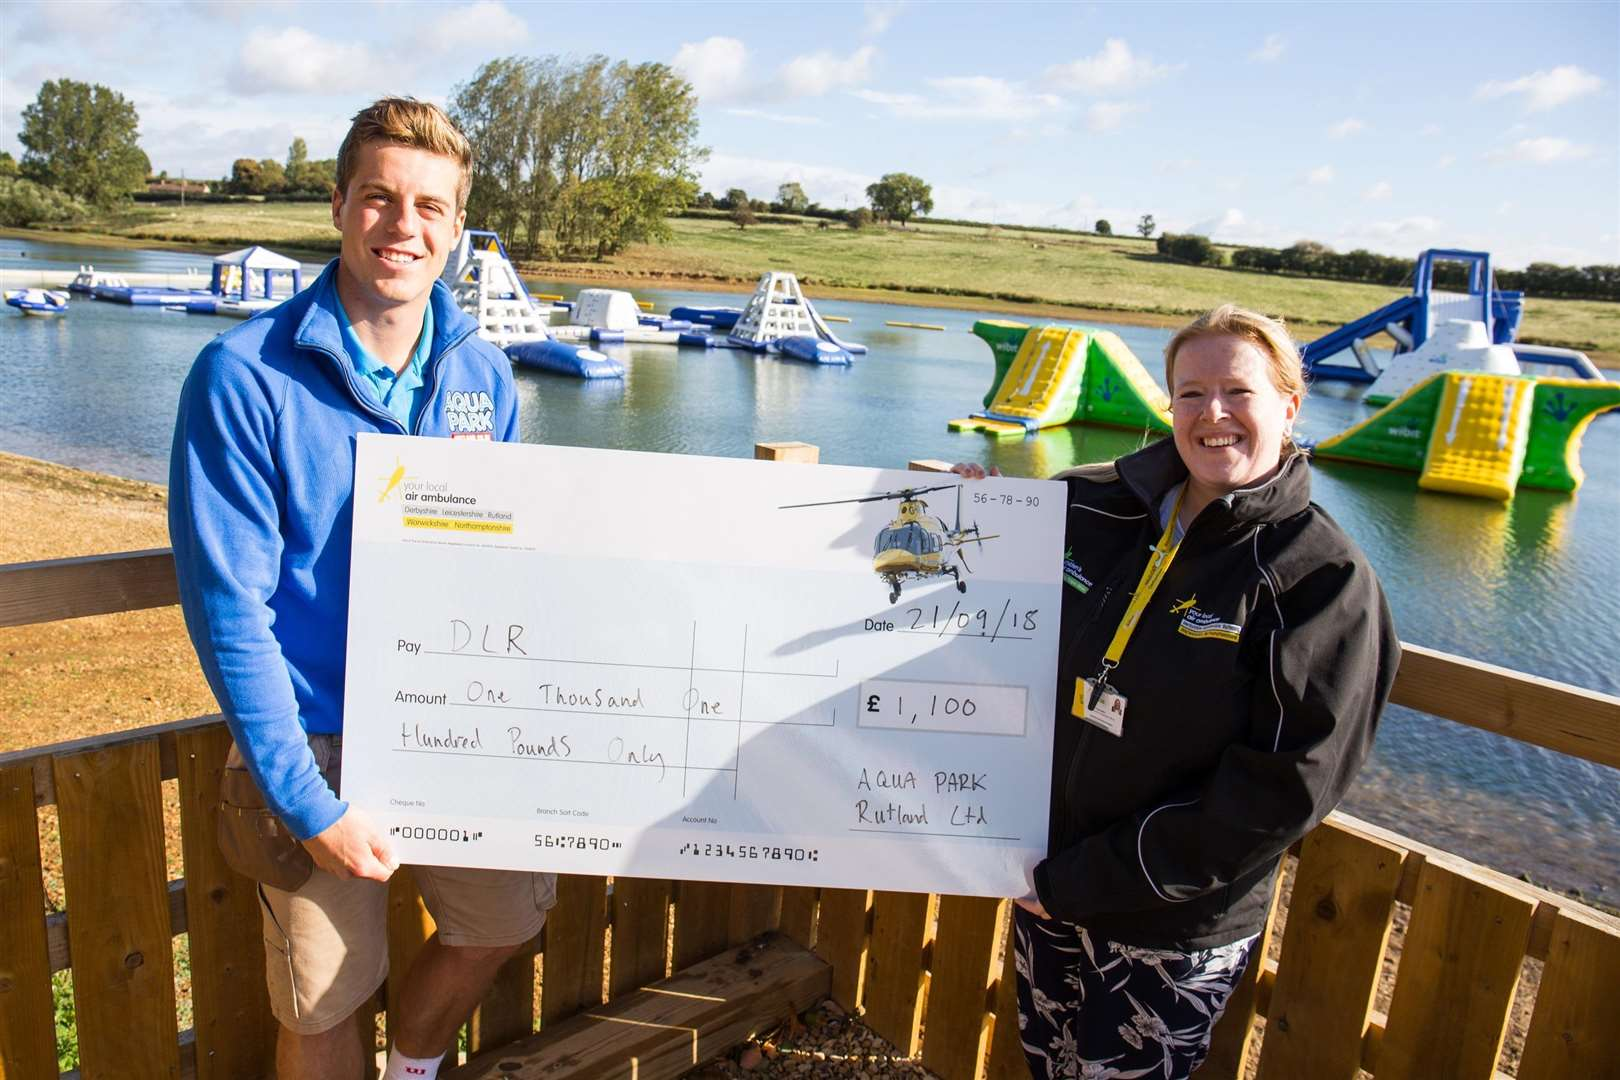 Richard Drinkwater of Aqua Park Rutland presents a cheque to Emma Cunnington of The Air Ambulance Service